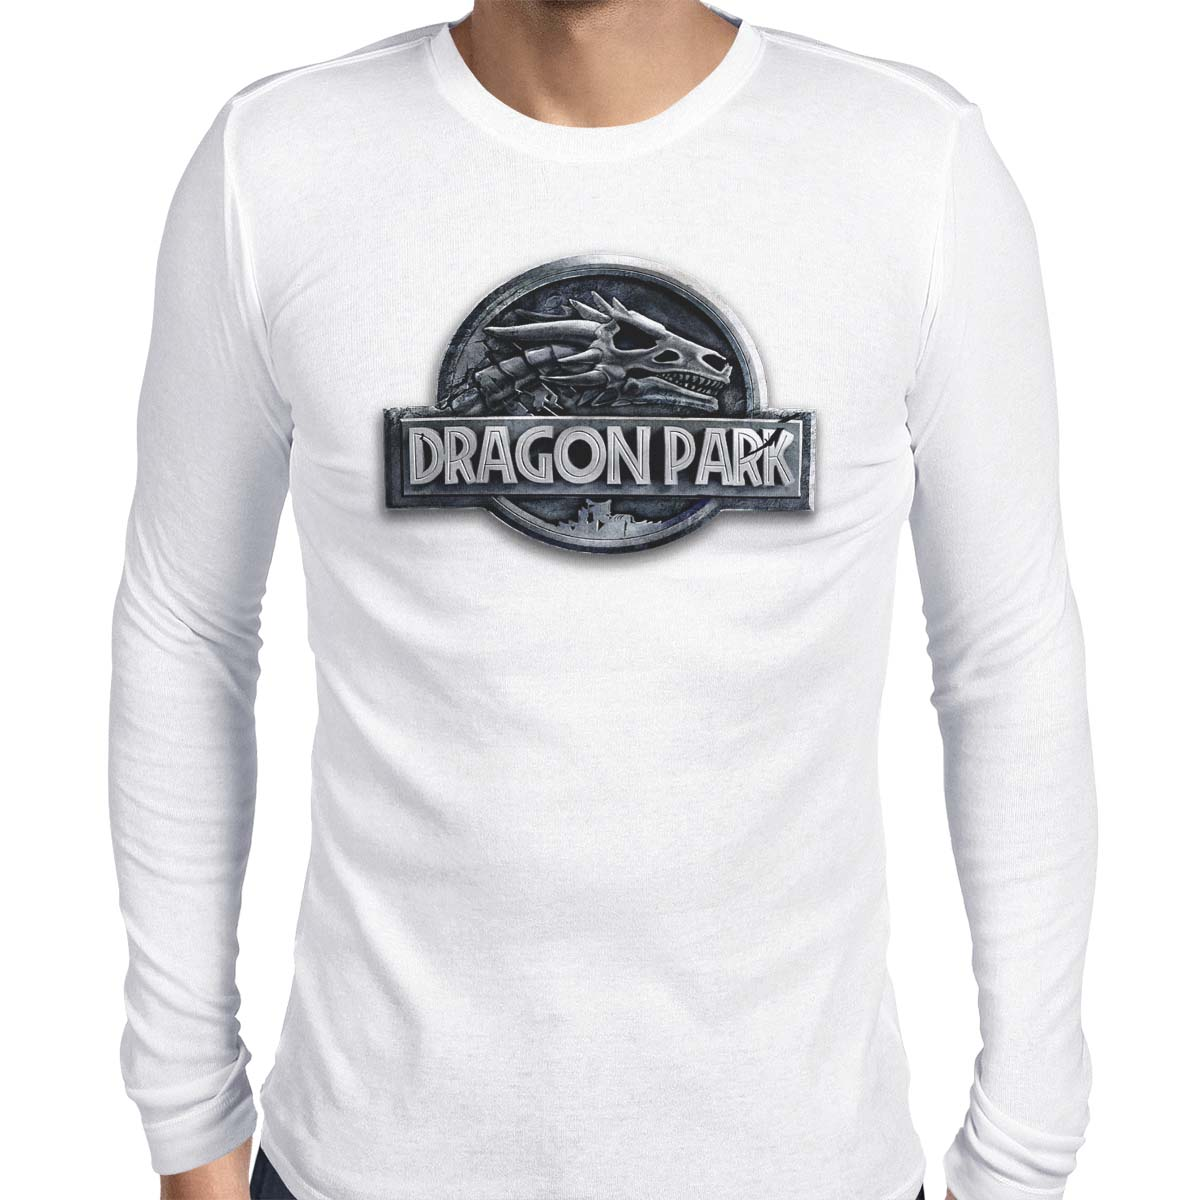 Dragon Park Men's Long Sleeve Tee